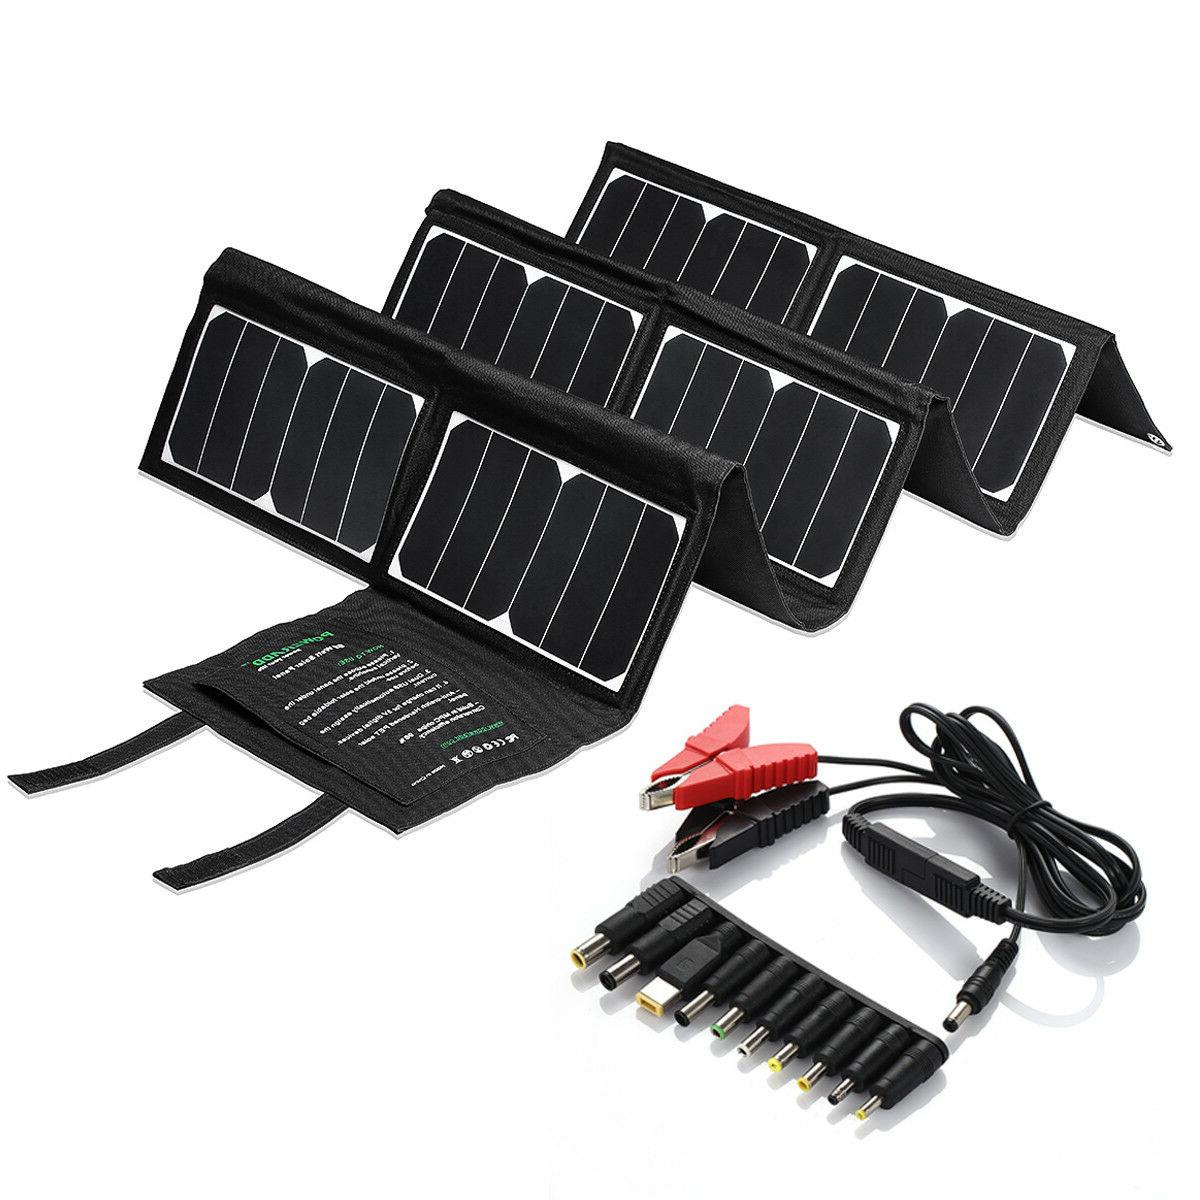 Poweradd 60W Solar Charger Portable Solar Waterproof 18V 5V